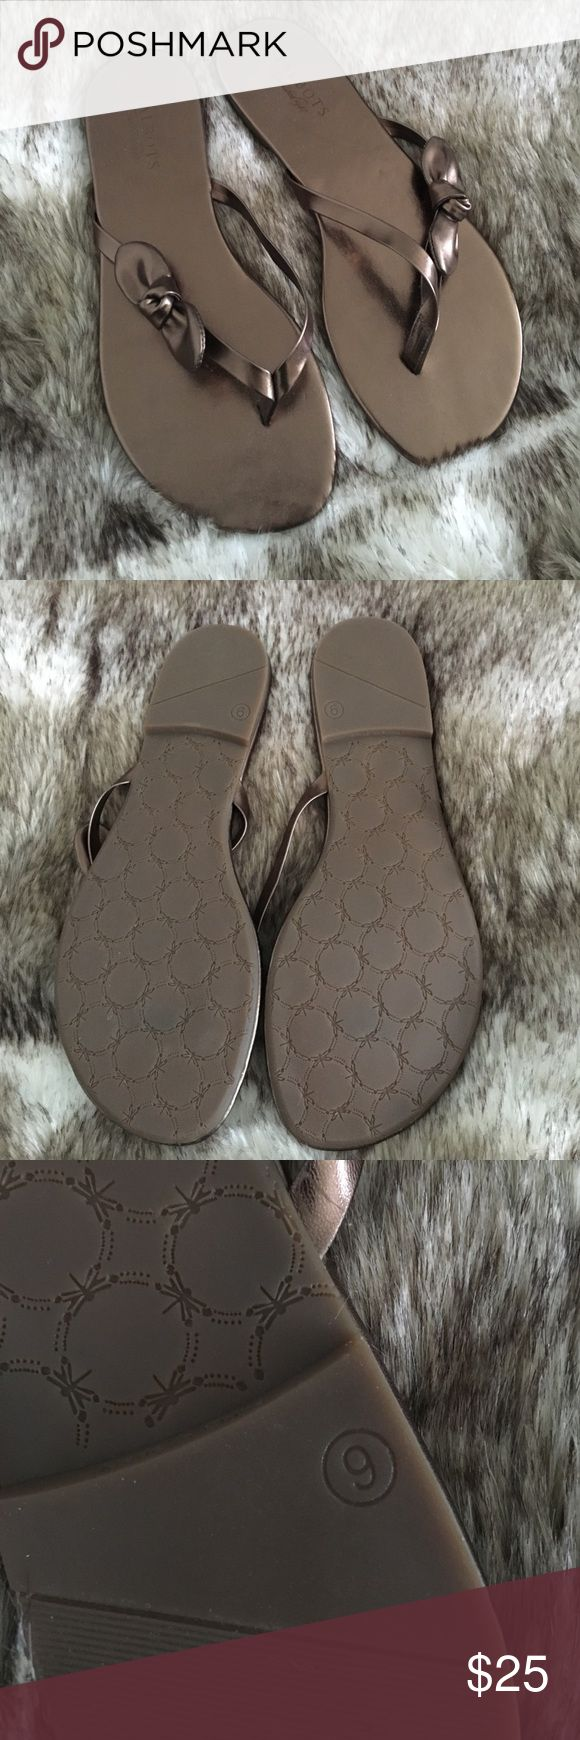 🥉Talbots bronze bow flip flops Bronze leather flip flops with bow knot detail on front strap and rubber sole. NEW, NEVER WORN! Comes in a Talbots's box Talbots Shoes Sandals